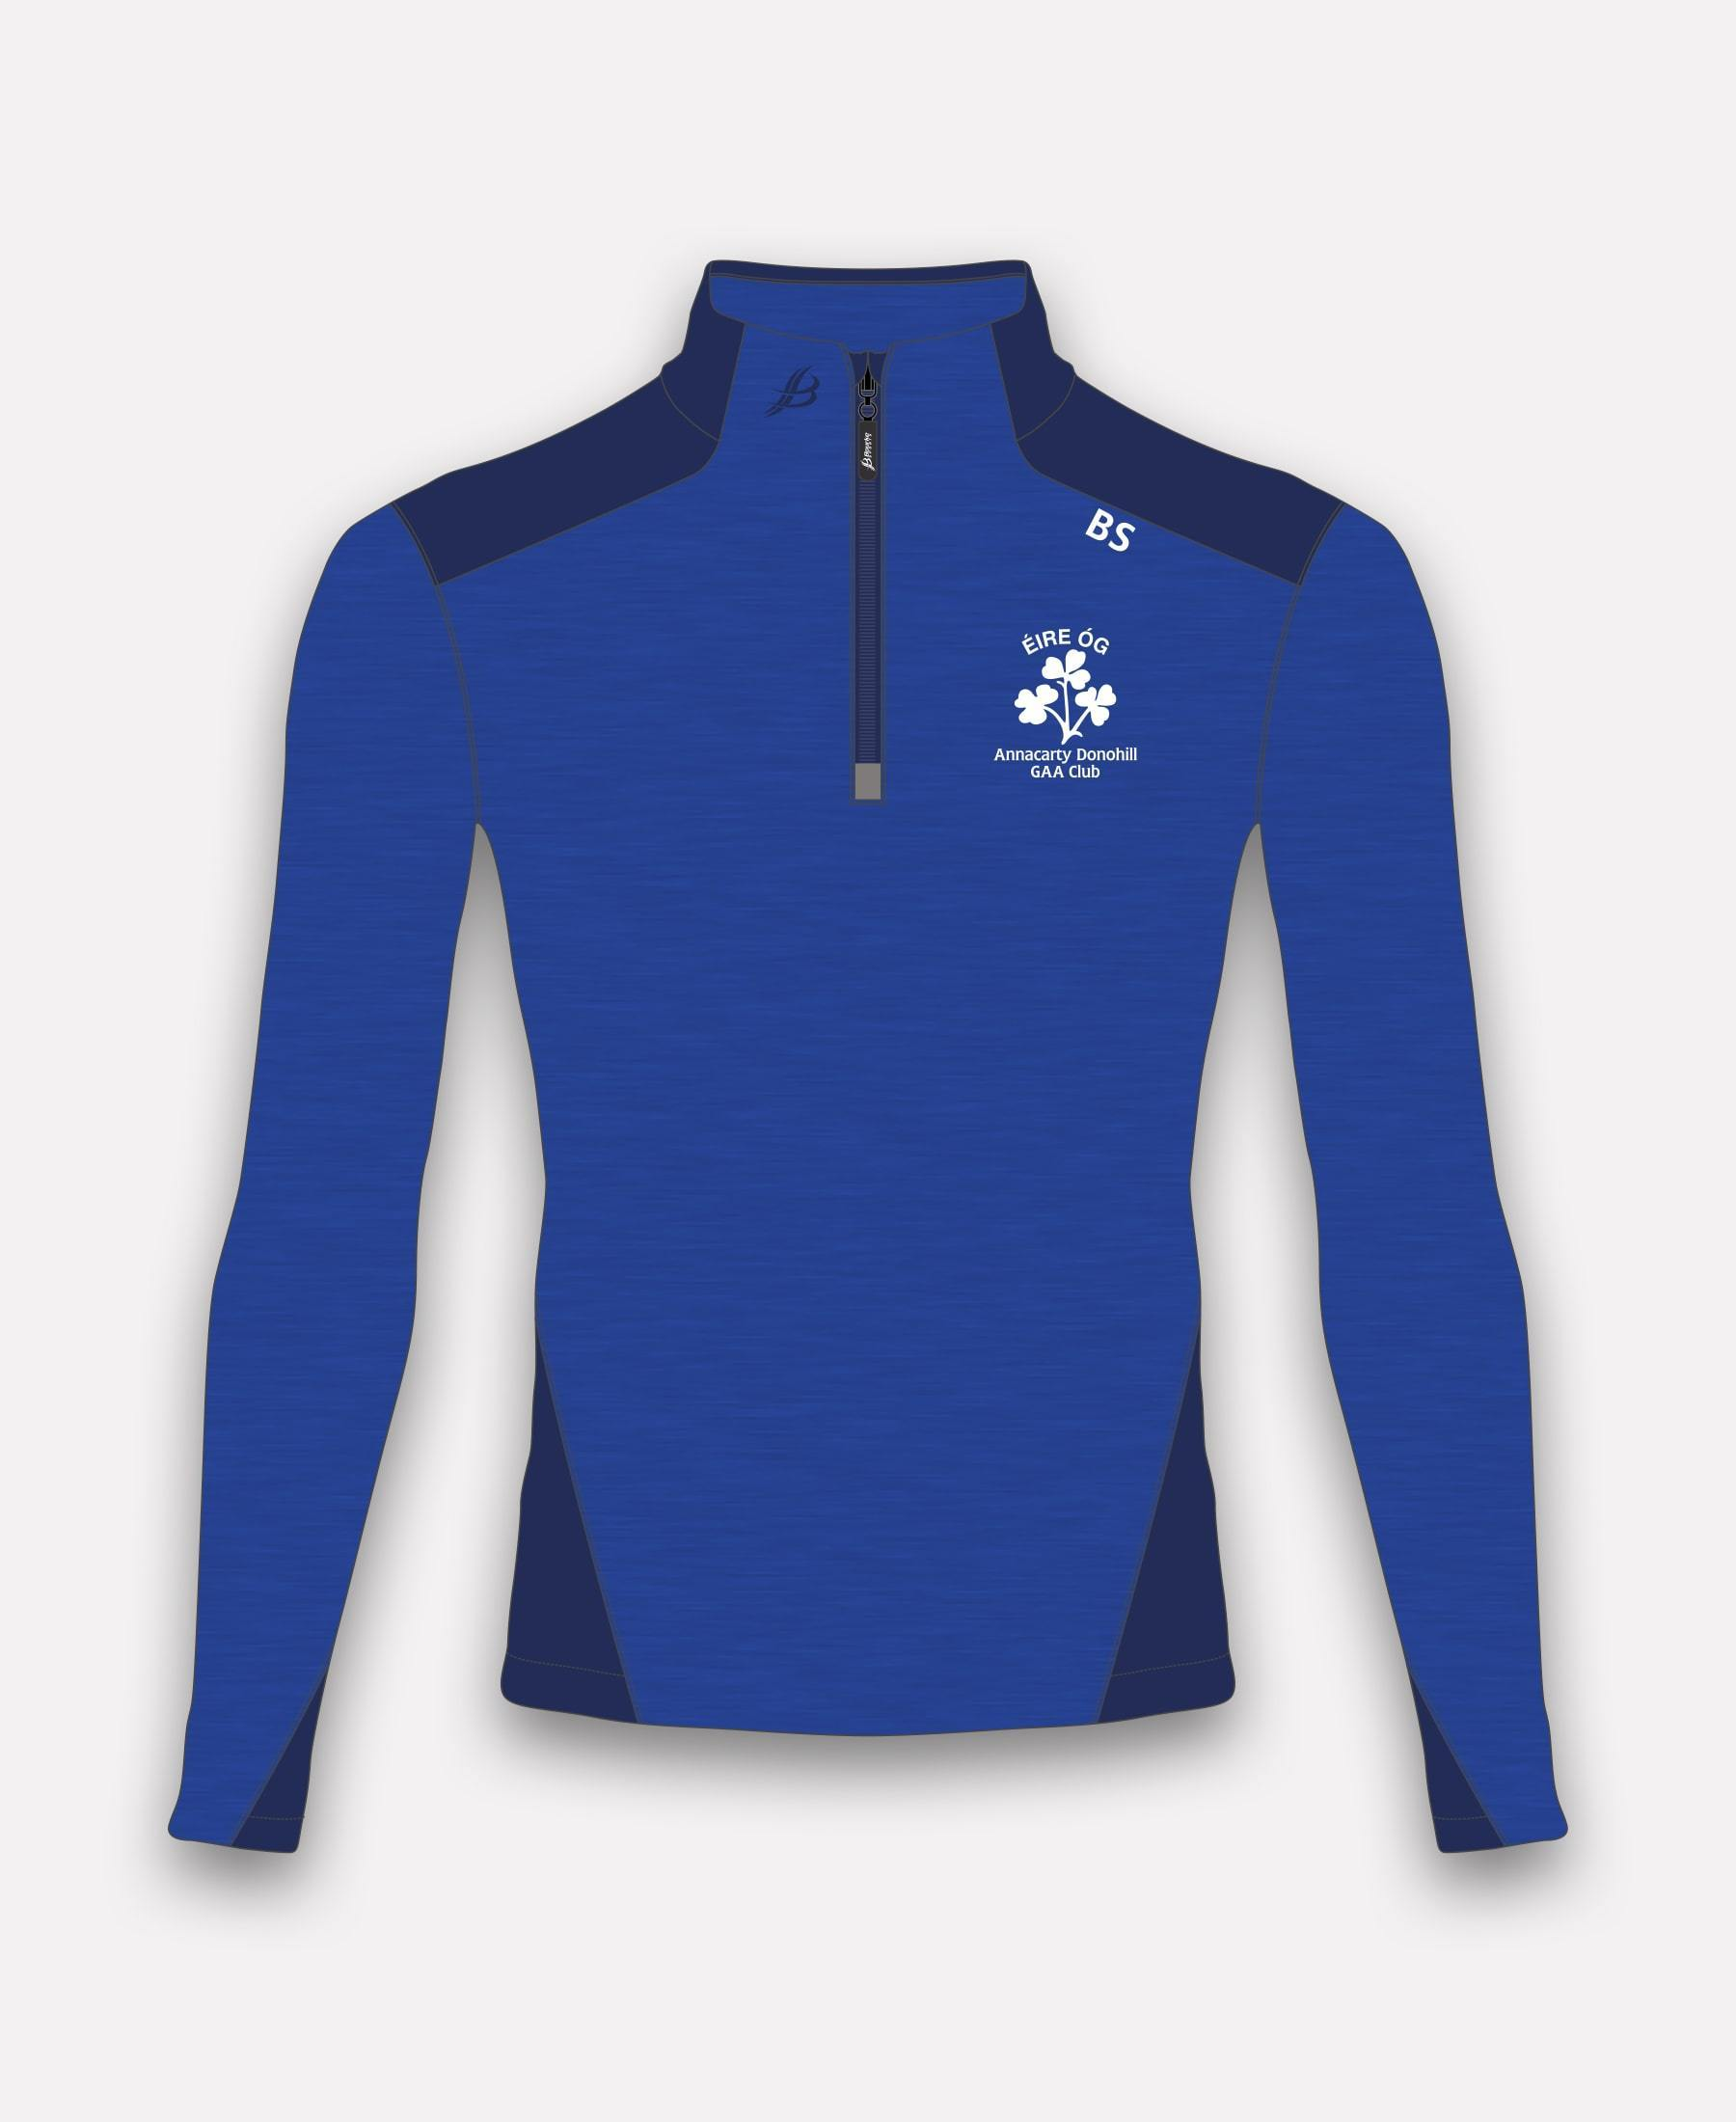 Eire Og Annacarty Donohill GAA BUA Half Zip - Bourke Sports Limited